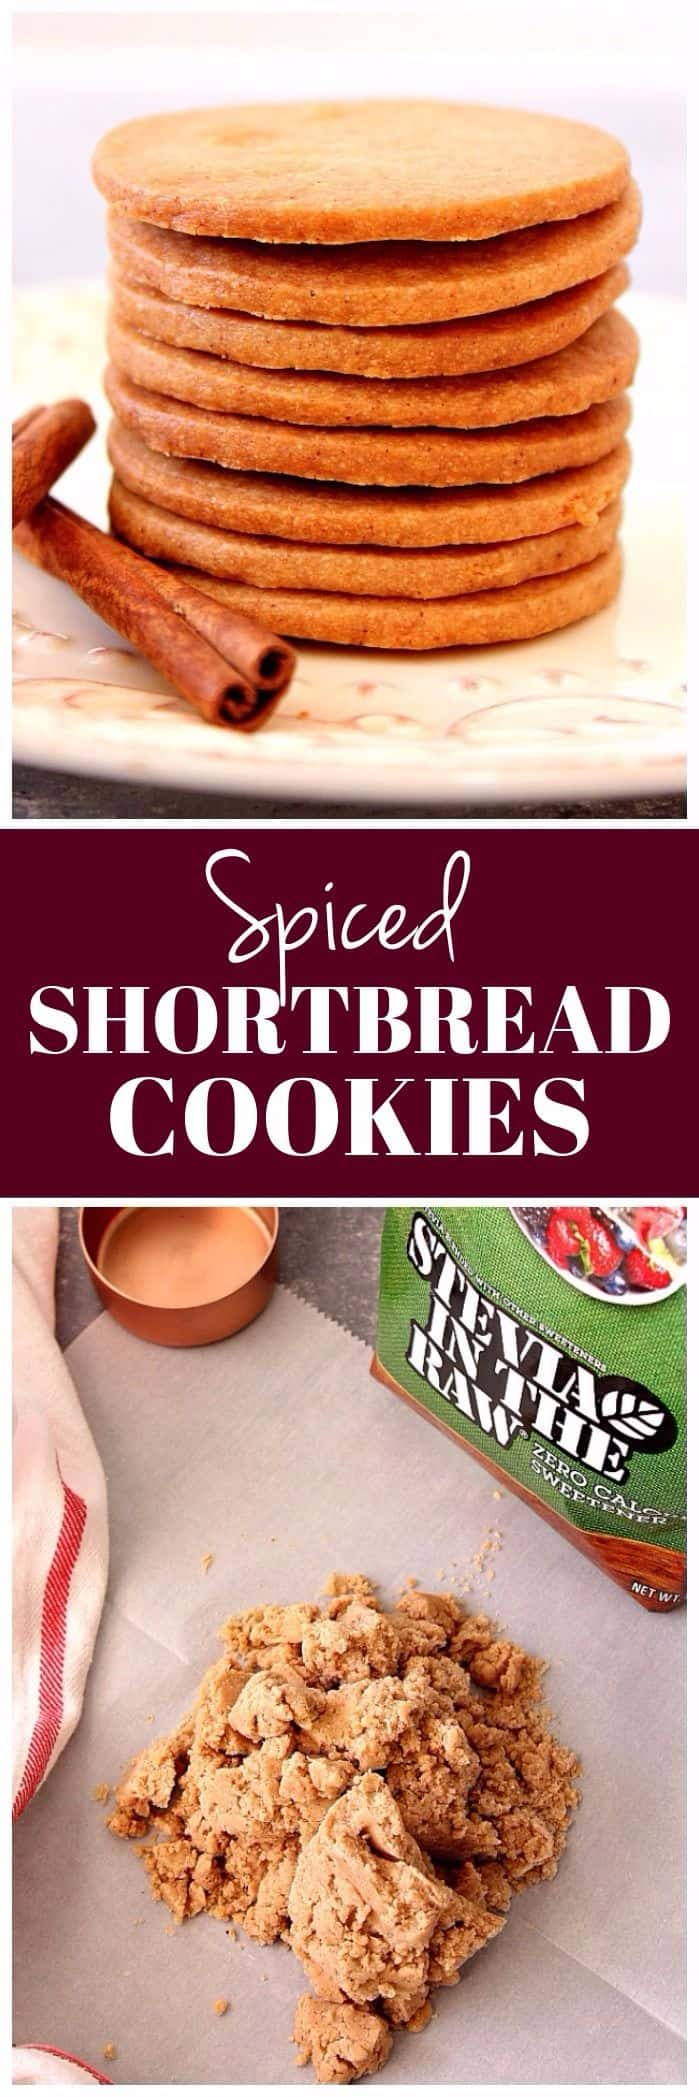 Spiced Shortbread Cookies Recipe long1 Spiced Shortbread Cookies Recipe